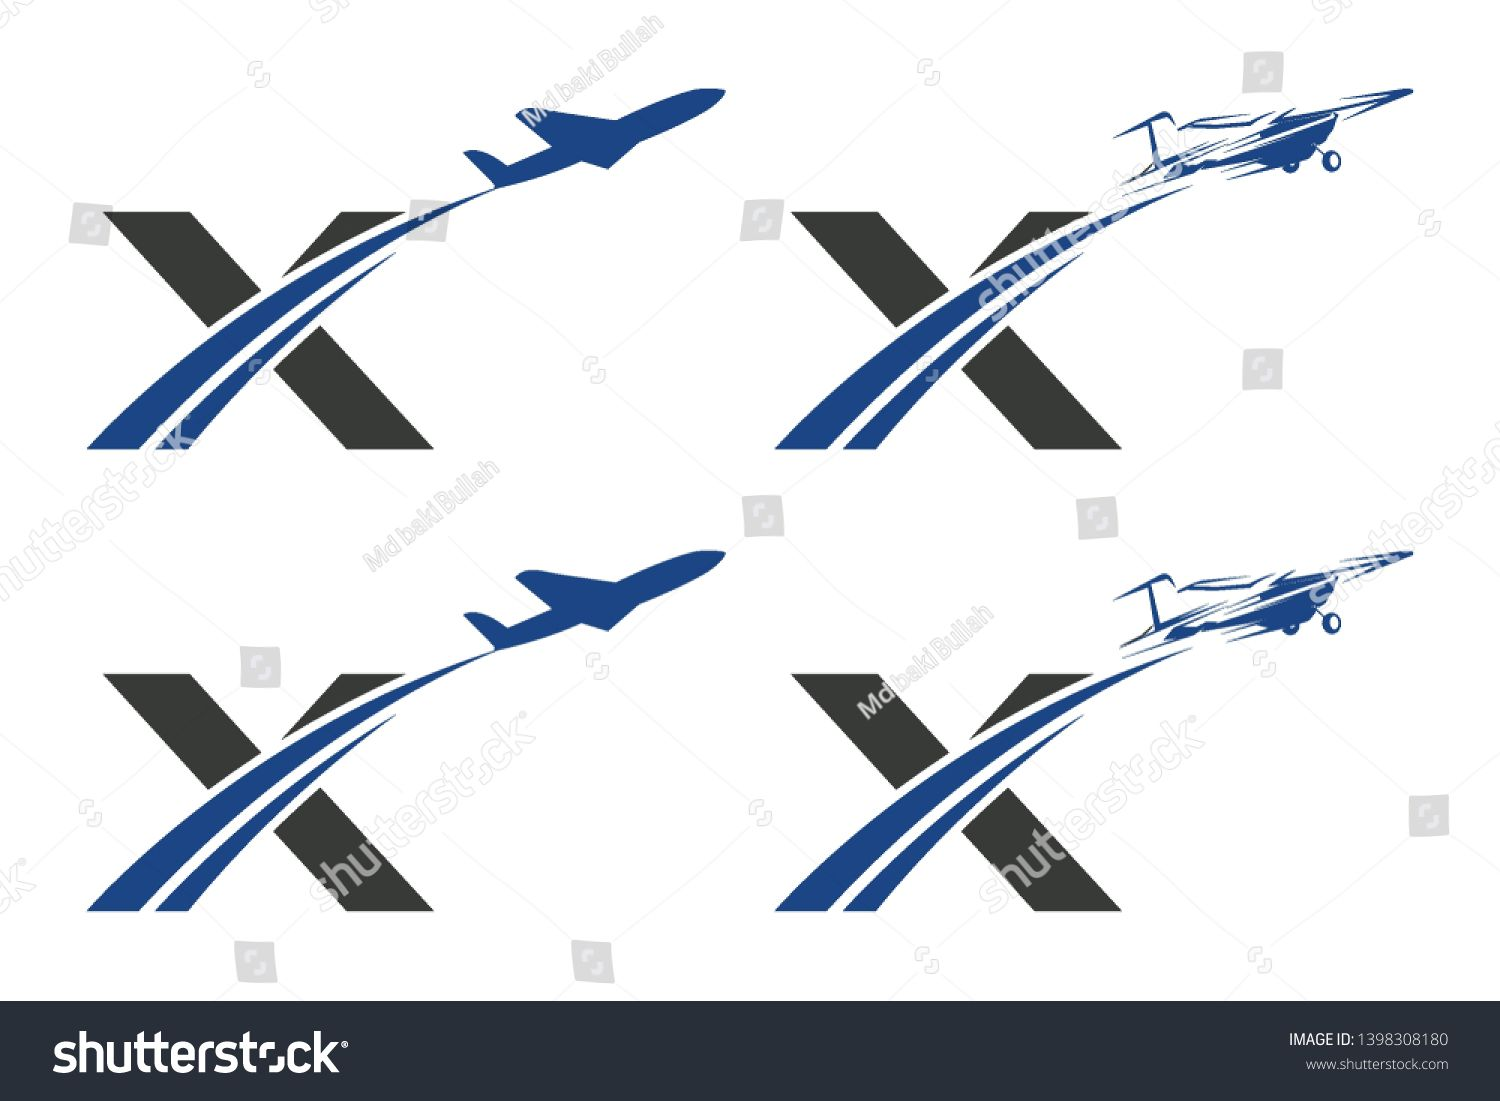 X Letter with Aviation Logo Design Sponsored , Ad,